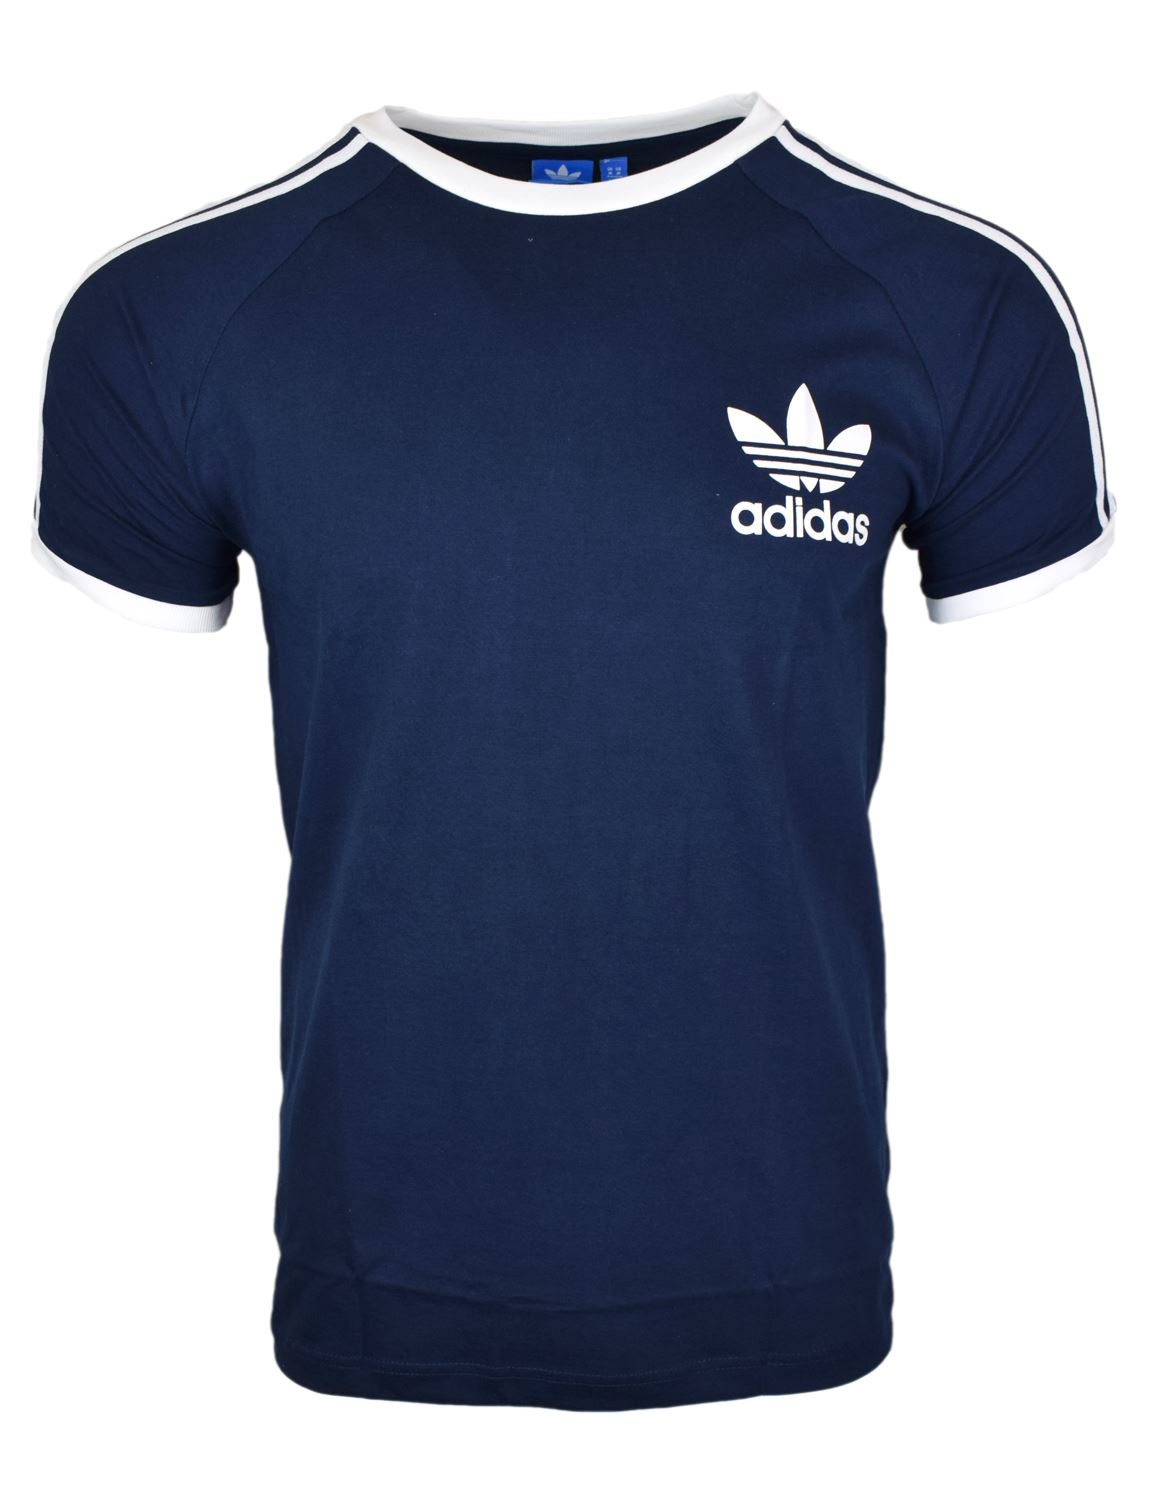 003db3836218 Adidas Originals Sports Essential Tee in Navy. Boasting the classic Adidas  trefoil logo design, this timeless tee is the perfect causal tee for the  laid ...